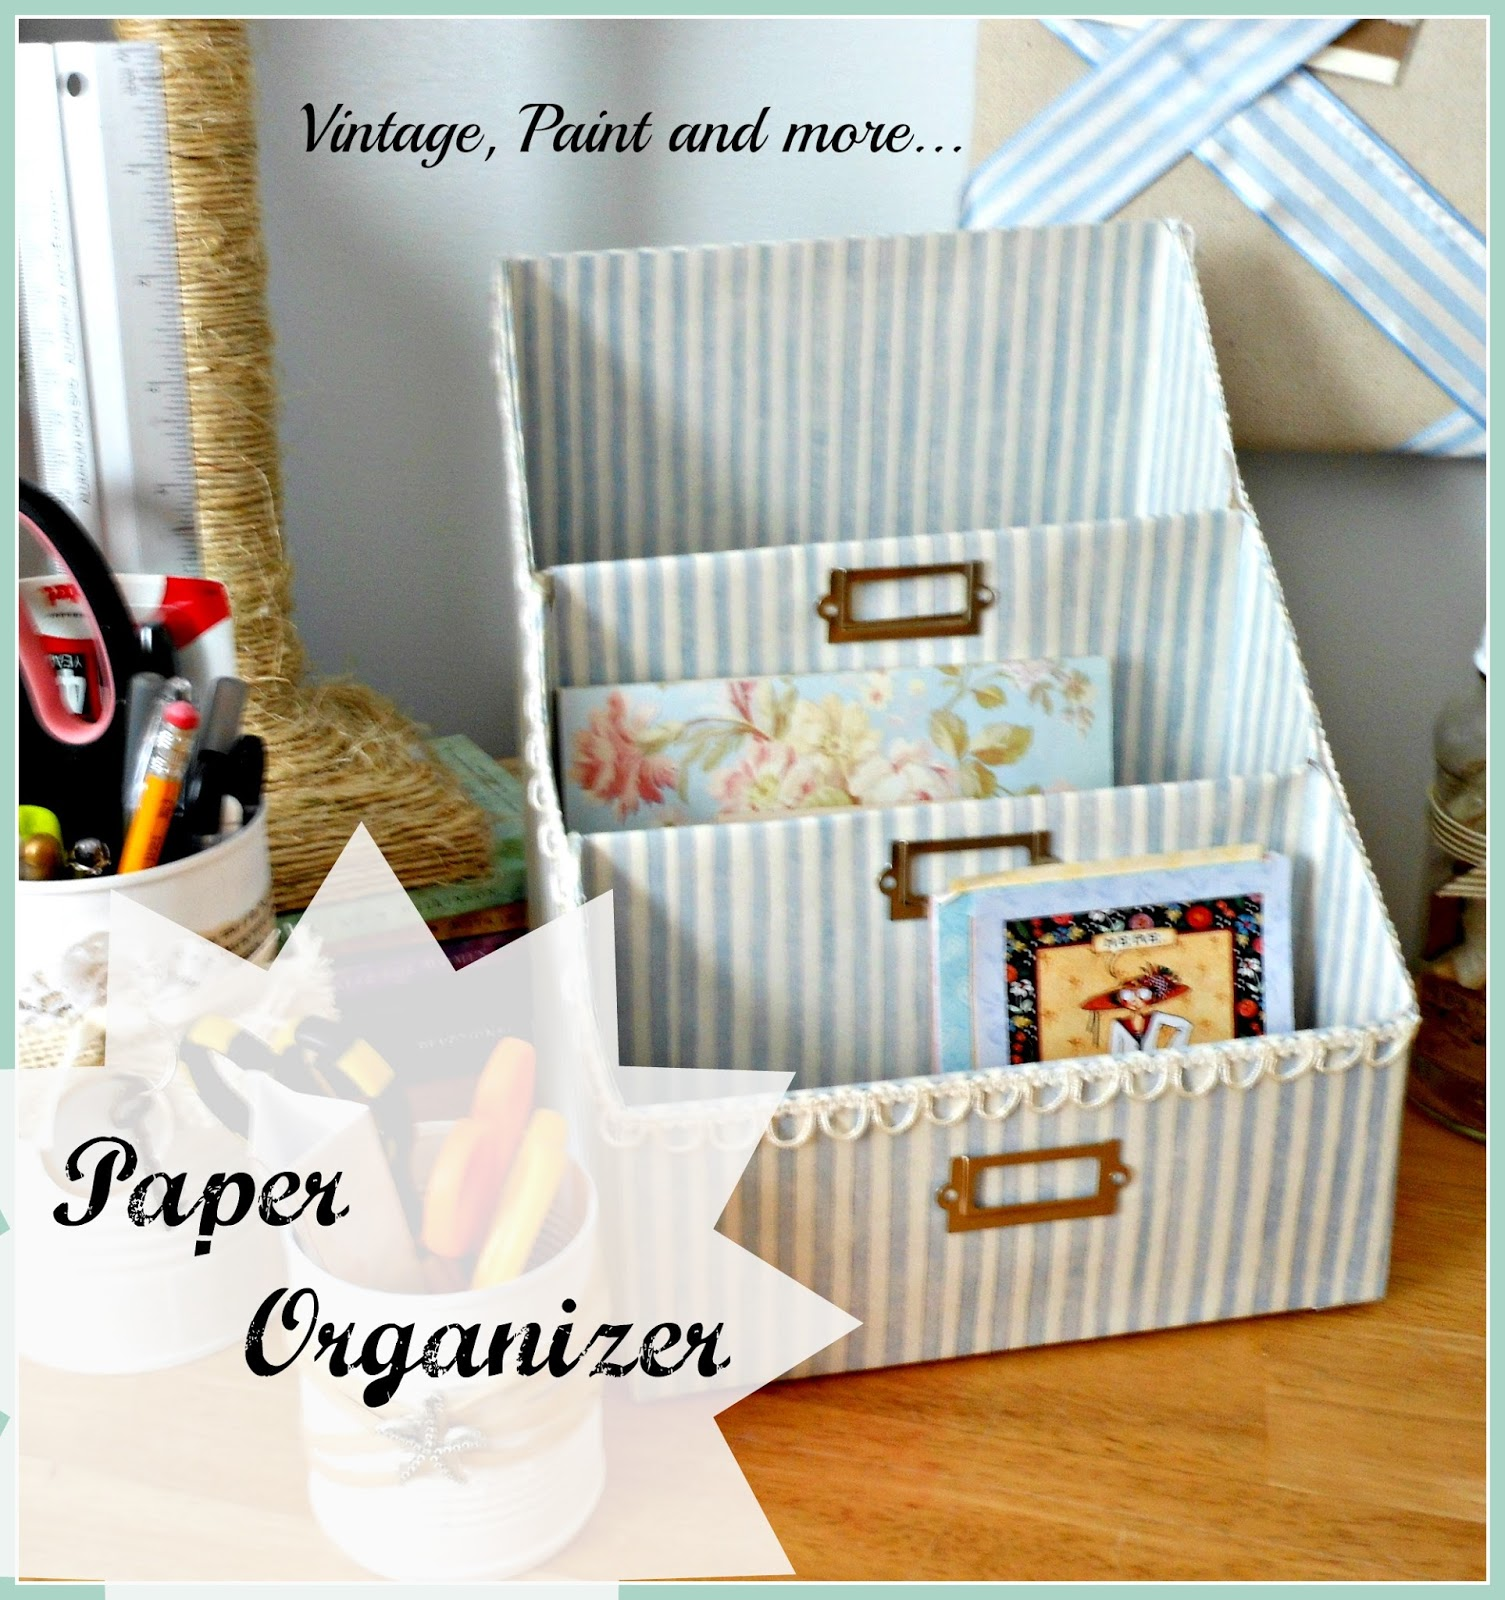 Vintage, Paint and more... DIY paper storage from cereal boxes and scrapbook papers